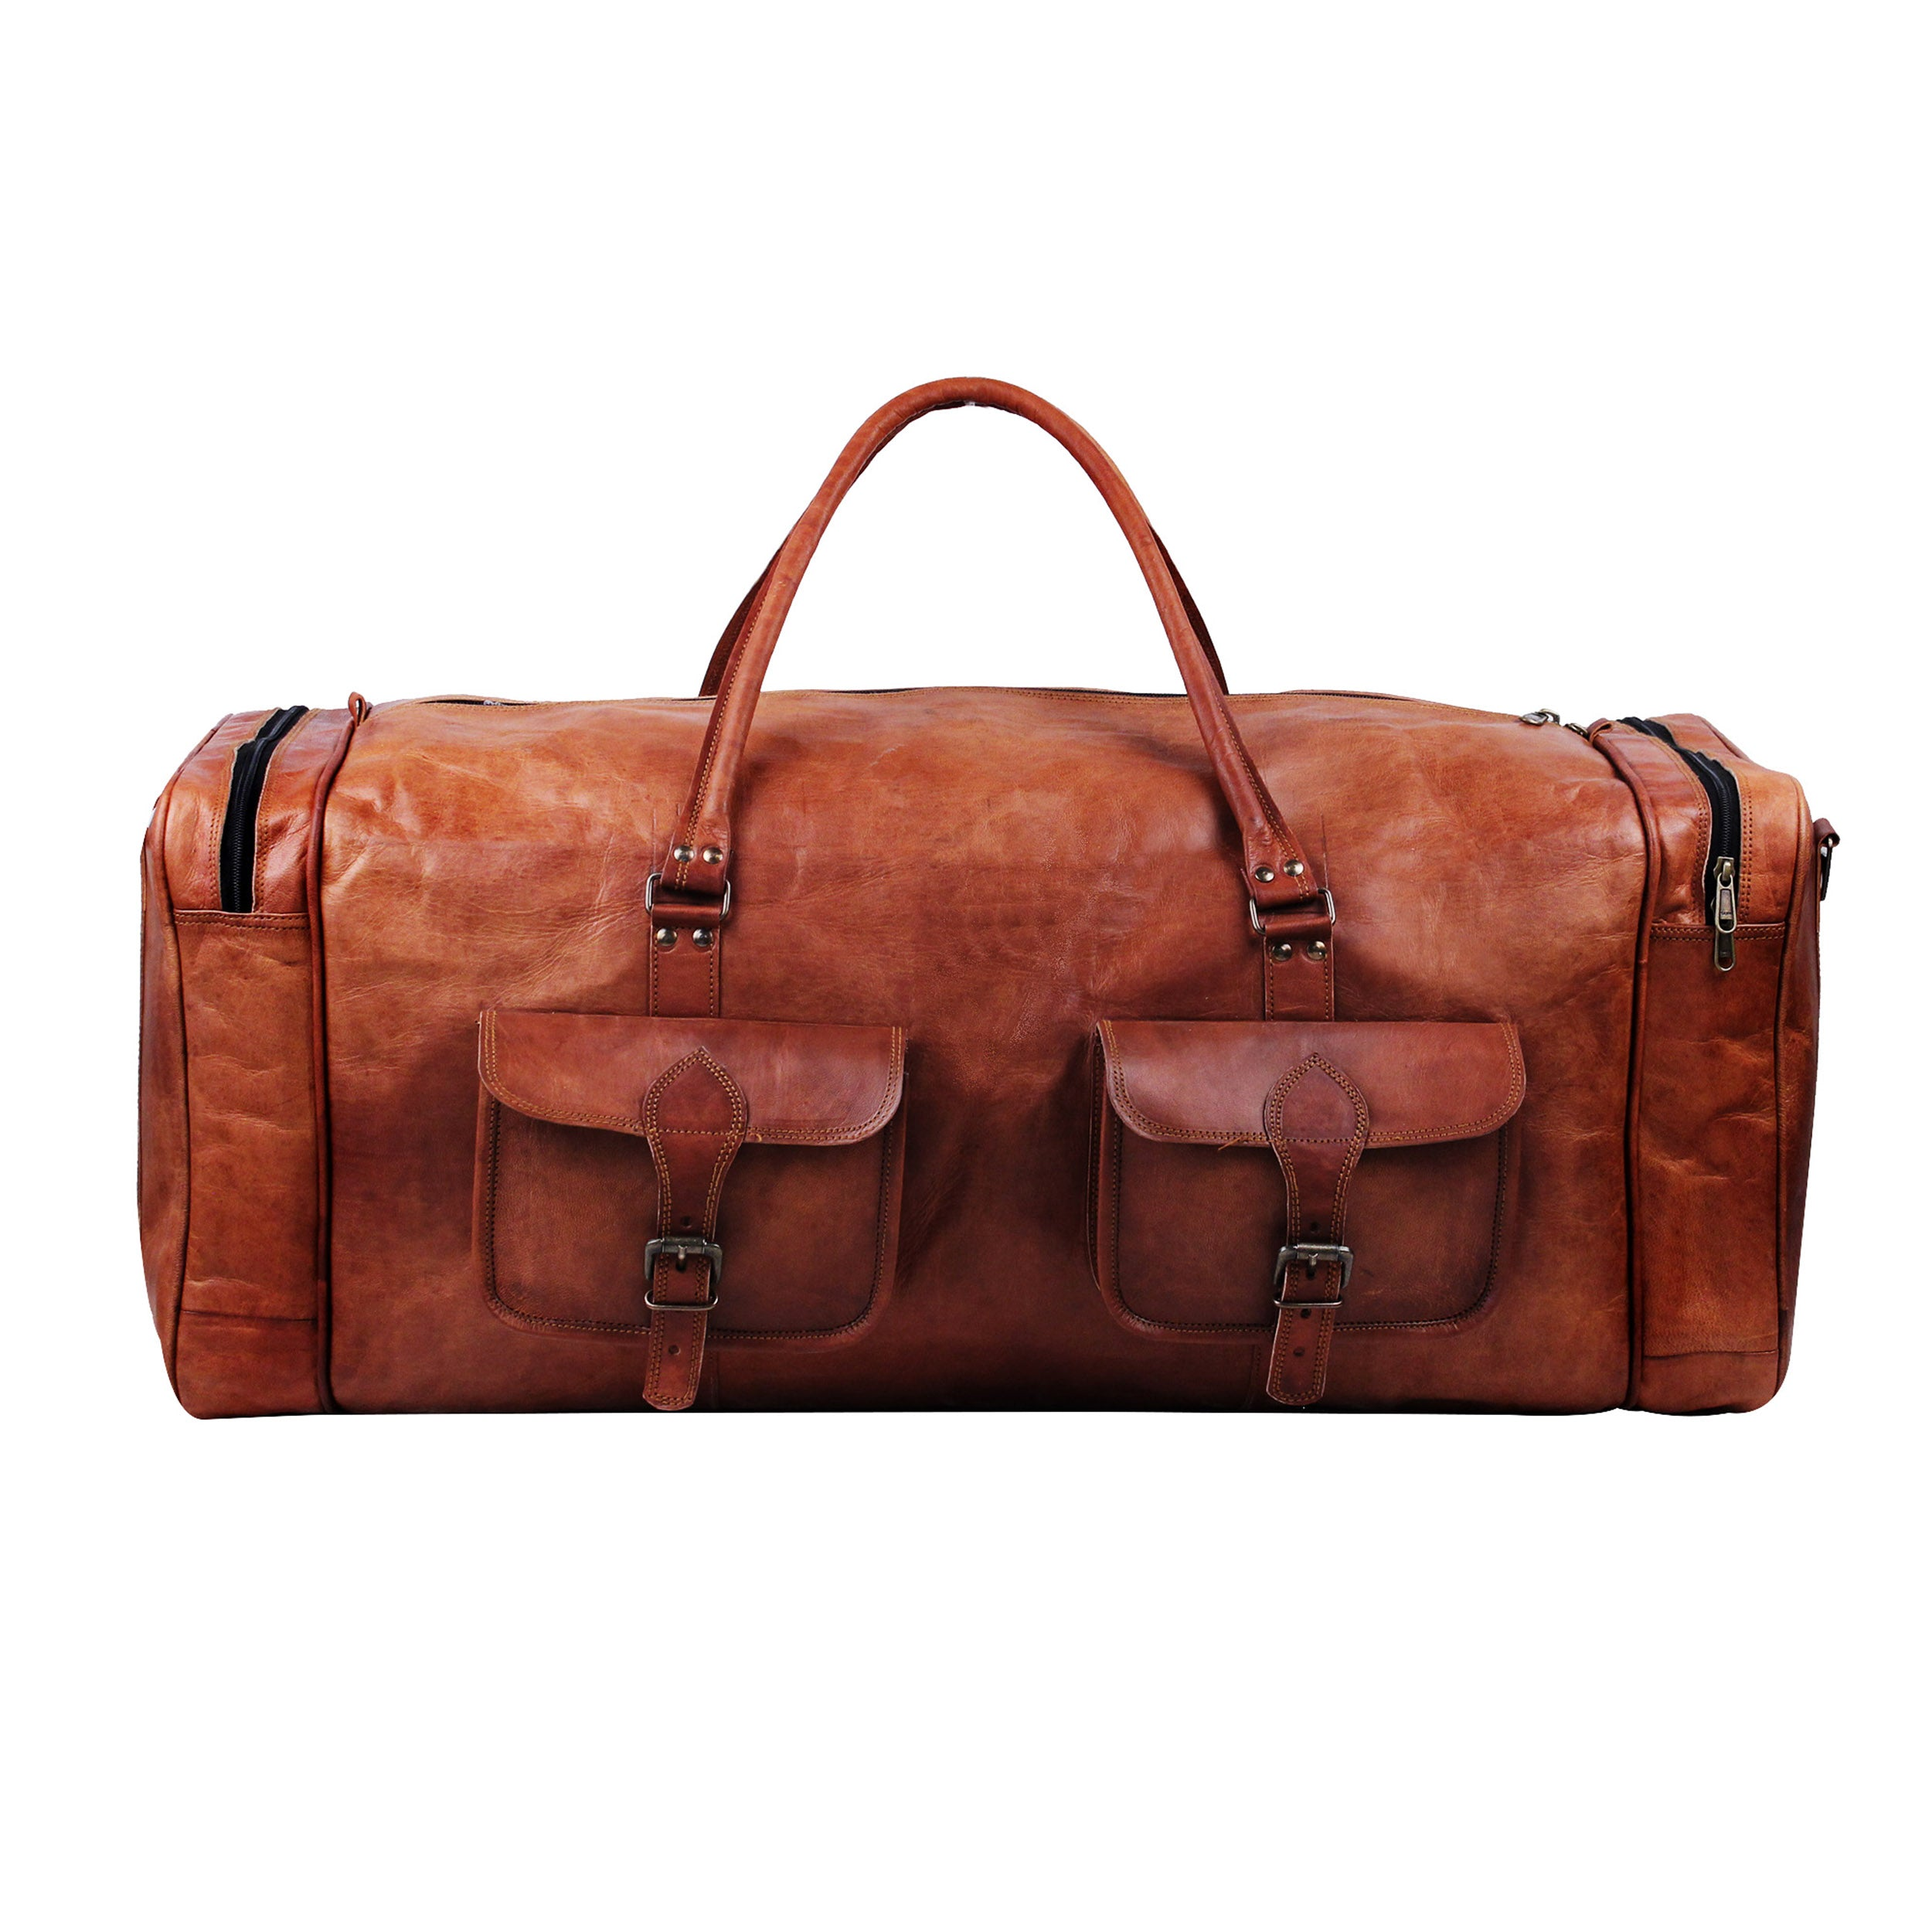 Large Full Grain Leather Square Duffle Bag with Top Handle